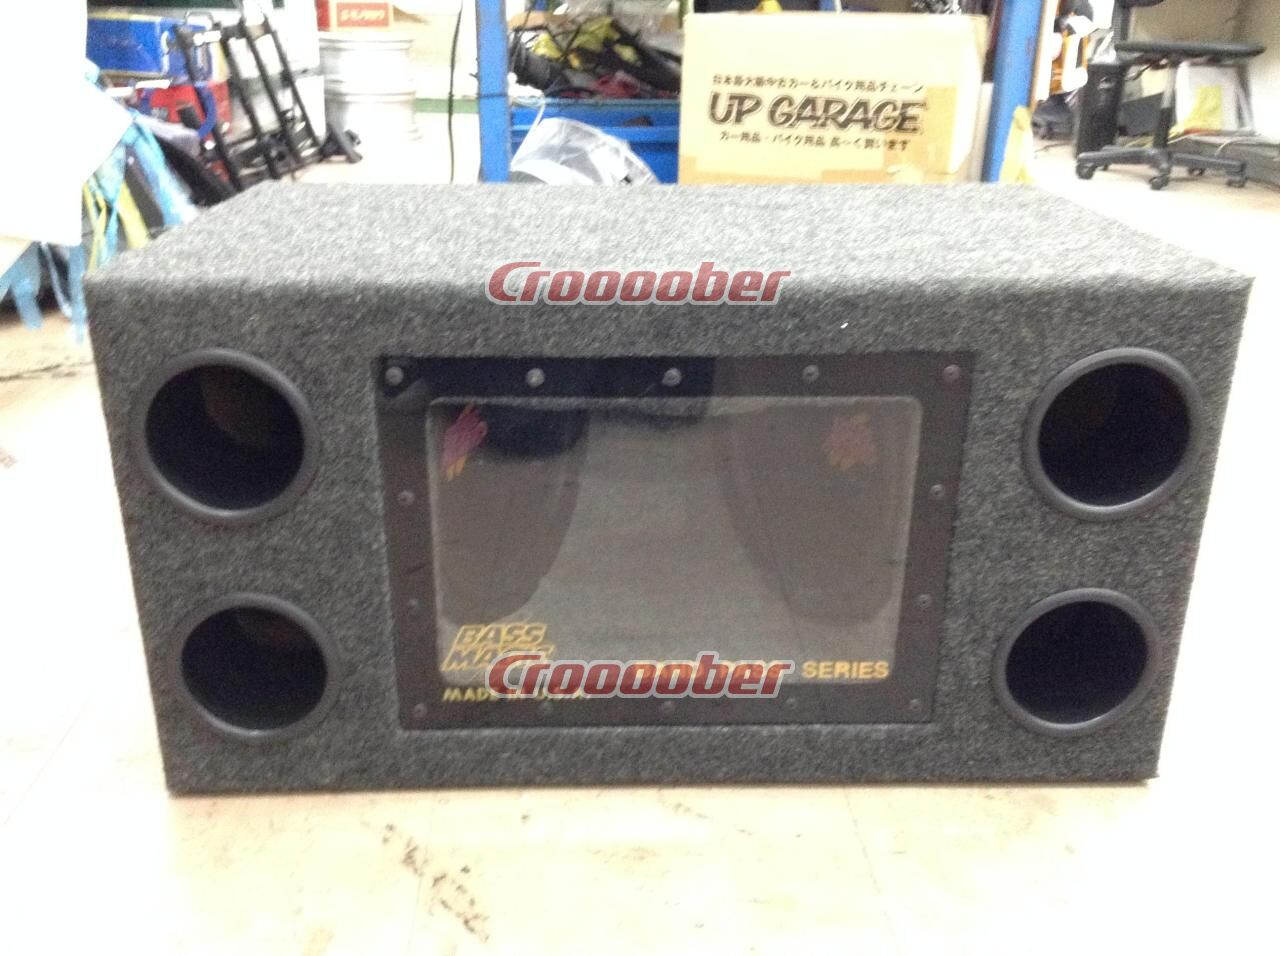 Bass Magic Box With Subwoofer Sub Woofer With Box Croooober